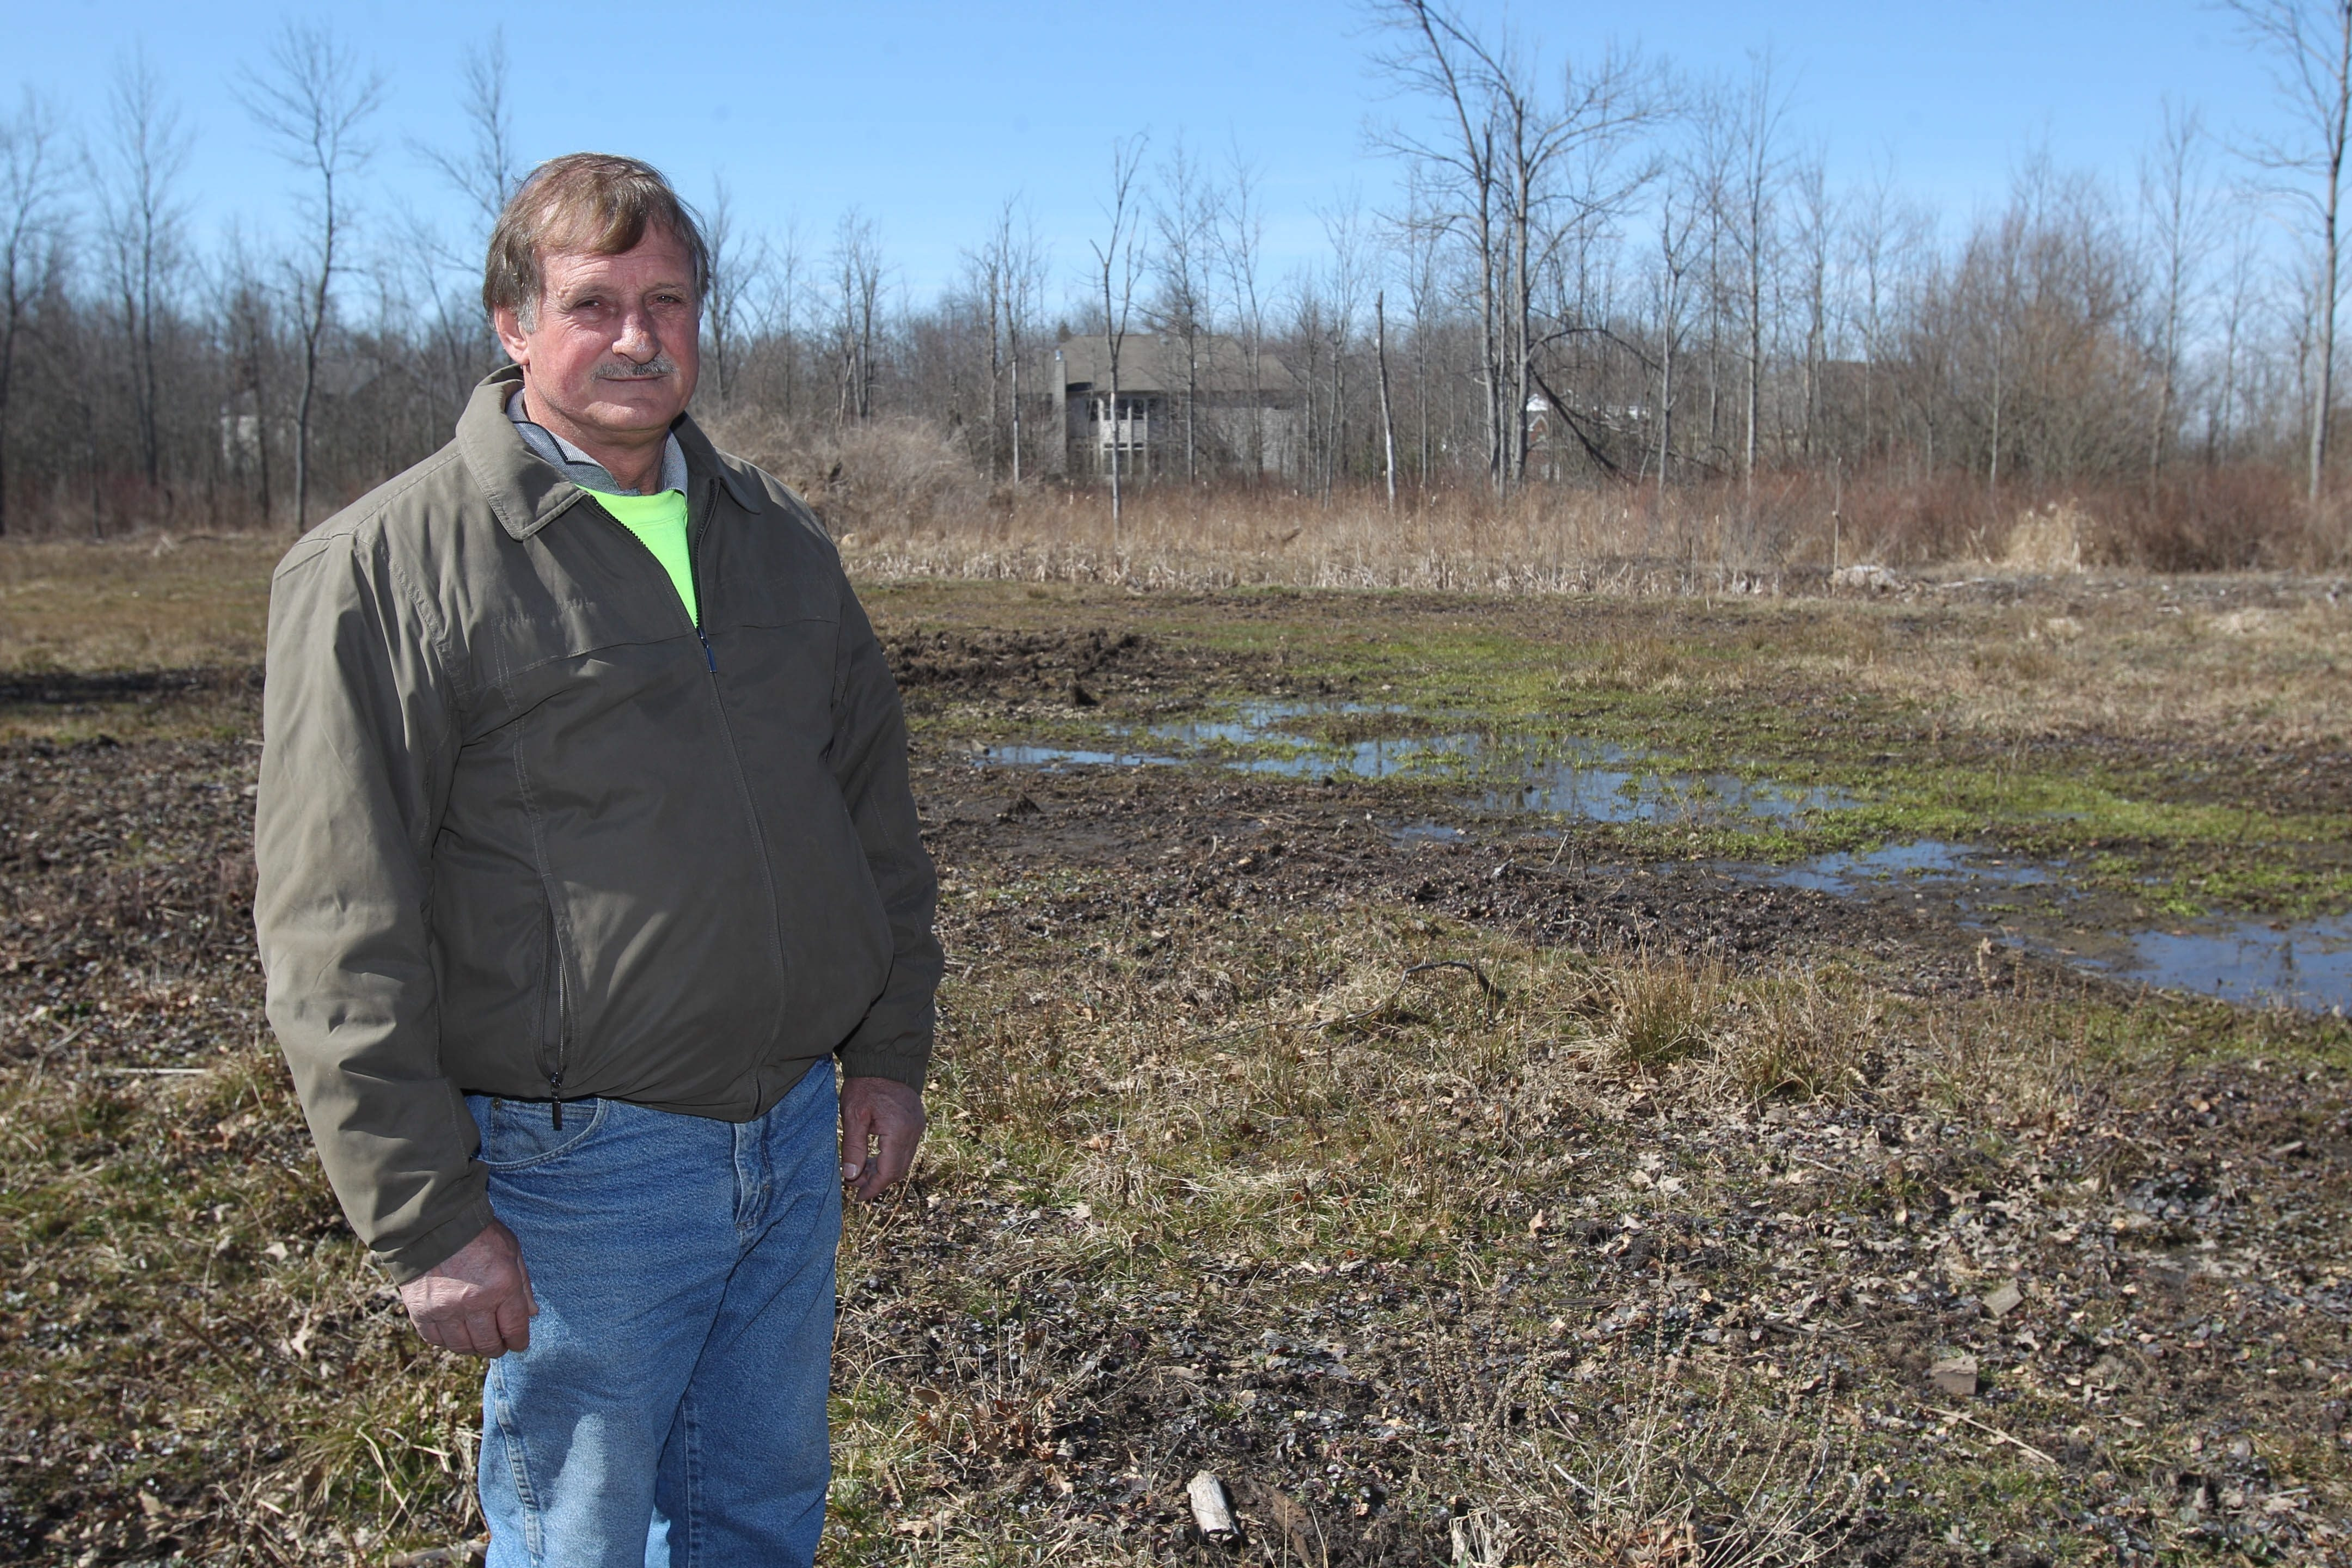 Paul Marinaccio won a $1.6 million verdict against the Town of Clarence for allowing a developer to drain storm water onto his property. At times his land was under three feet of water. The housing development that prompted the problem is in the background.